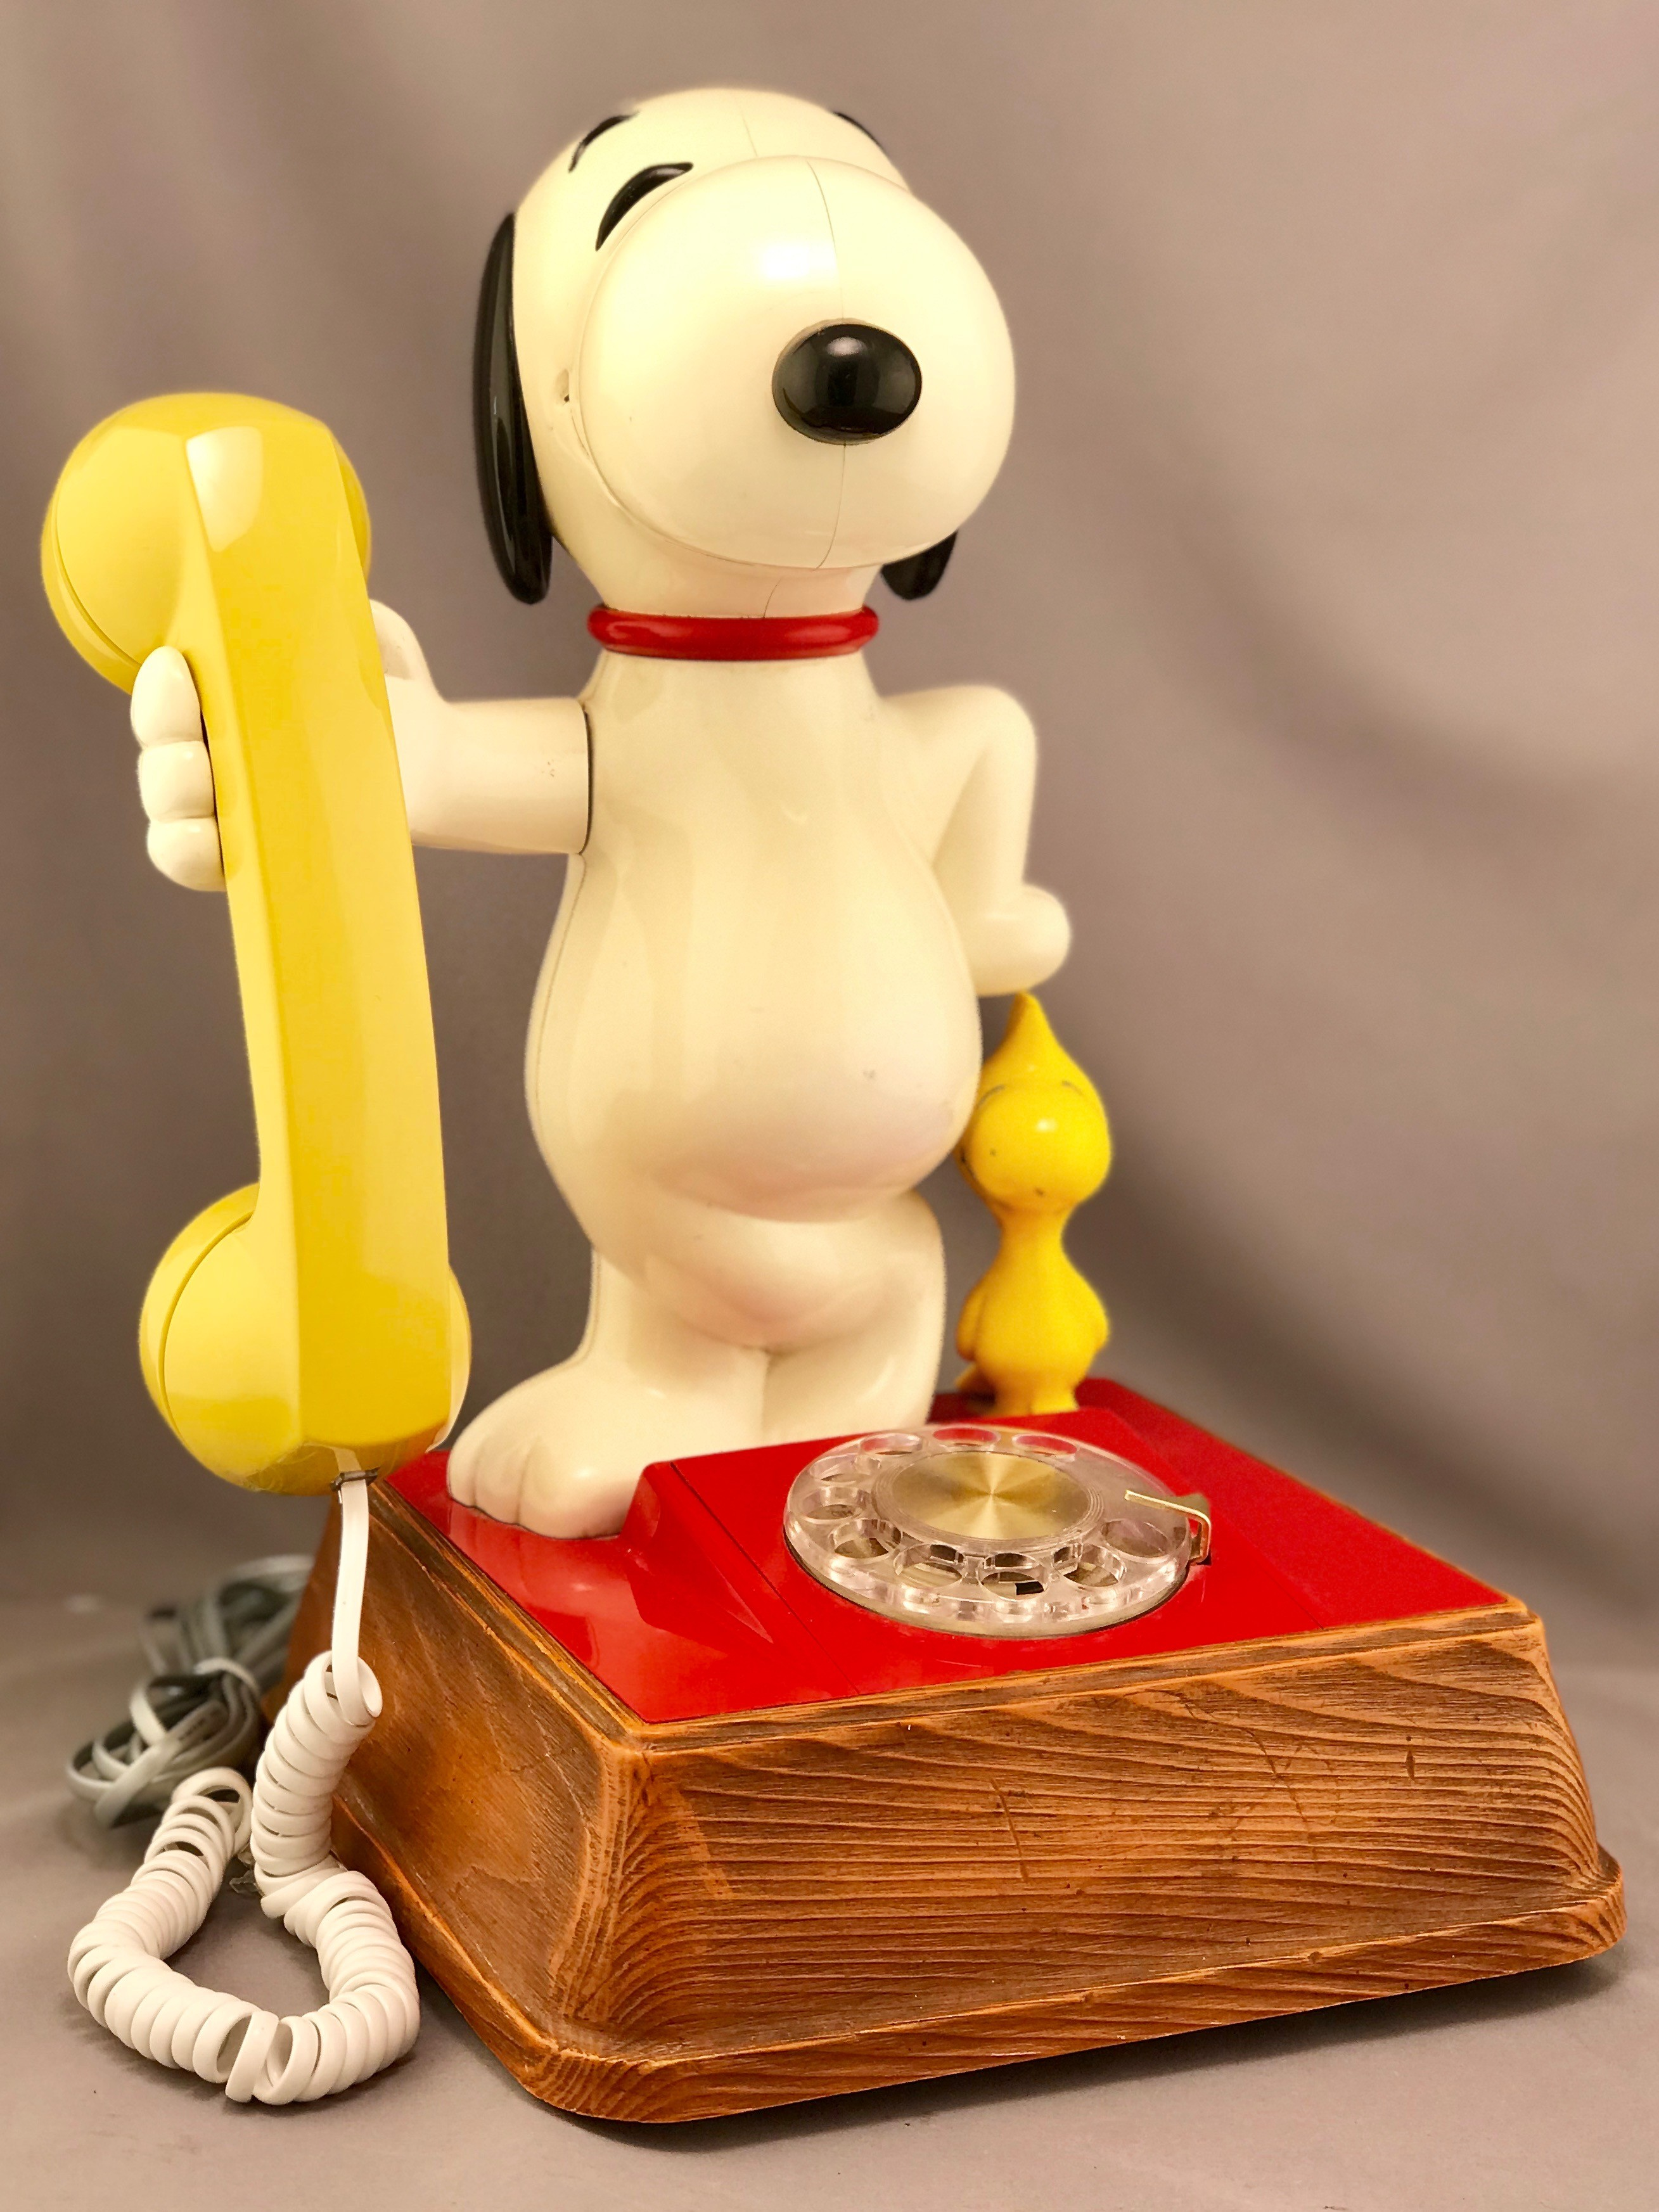 The Snoopy and Woodstock Telephone